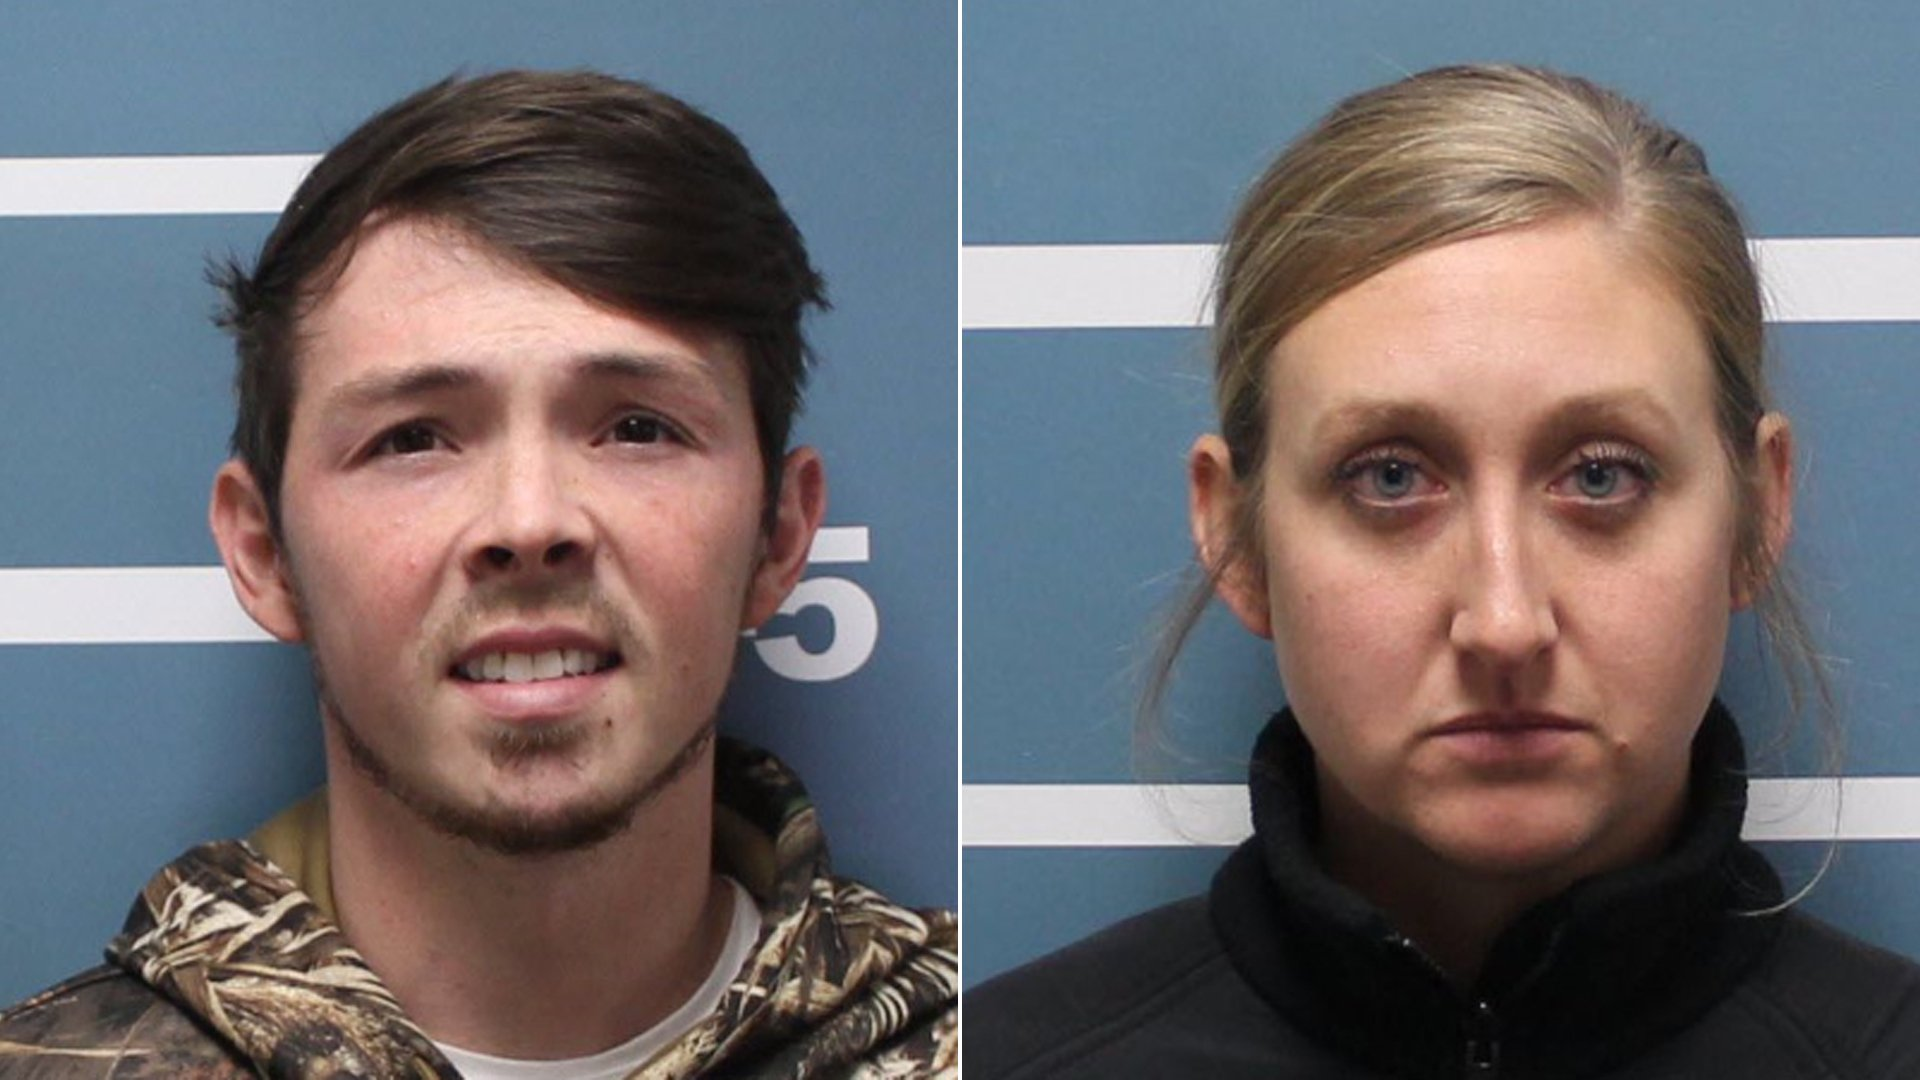 Corey Cornutt, 25, of Visalia and Savannah Grillot, 29, of Visalia, pictured in photos released by the Visalia Police Department following their arrests on Jan. 8, 2020.